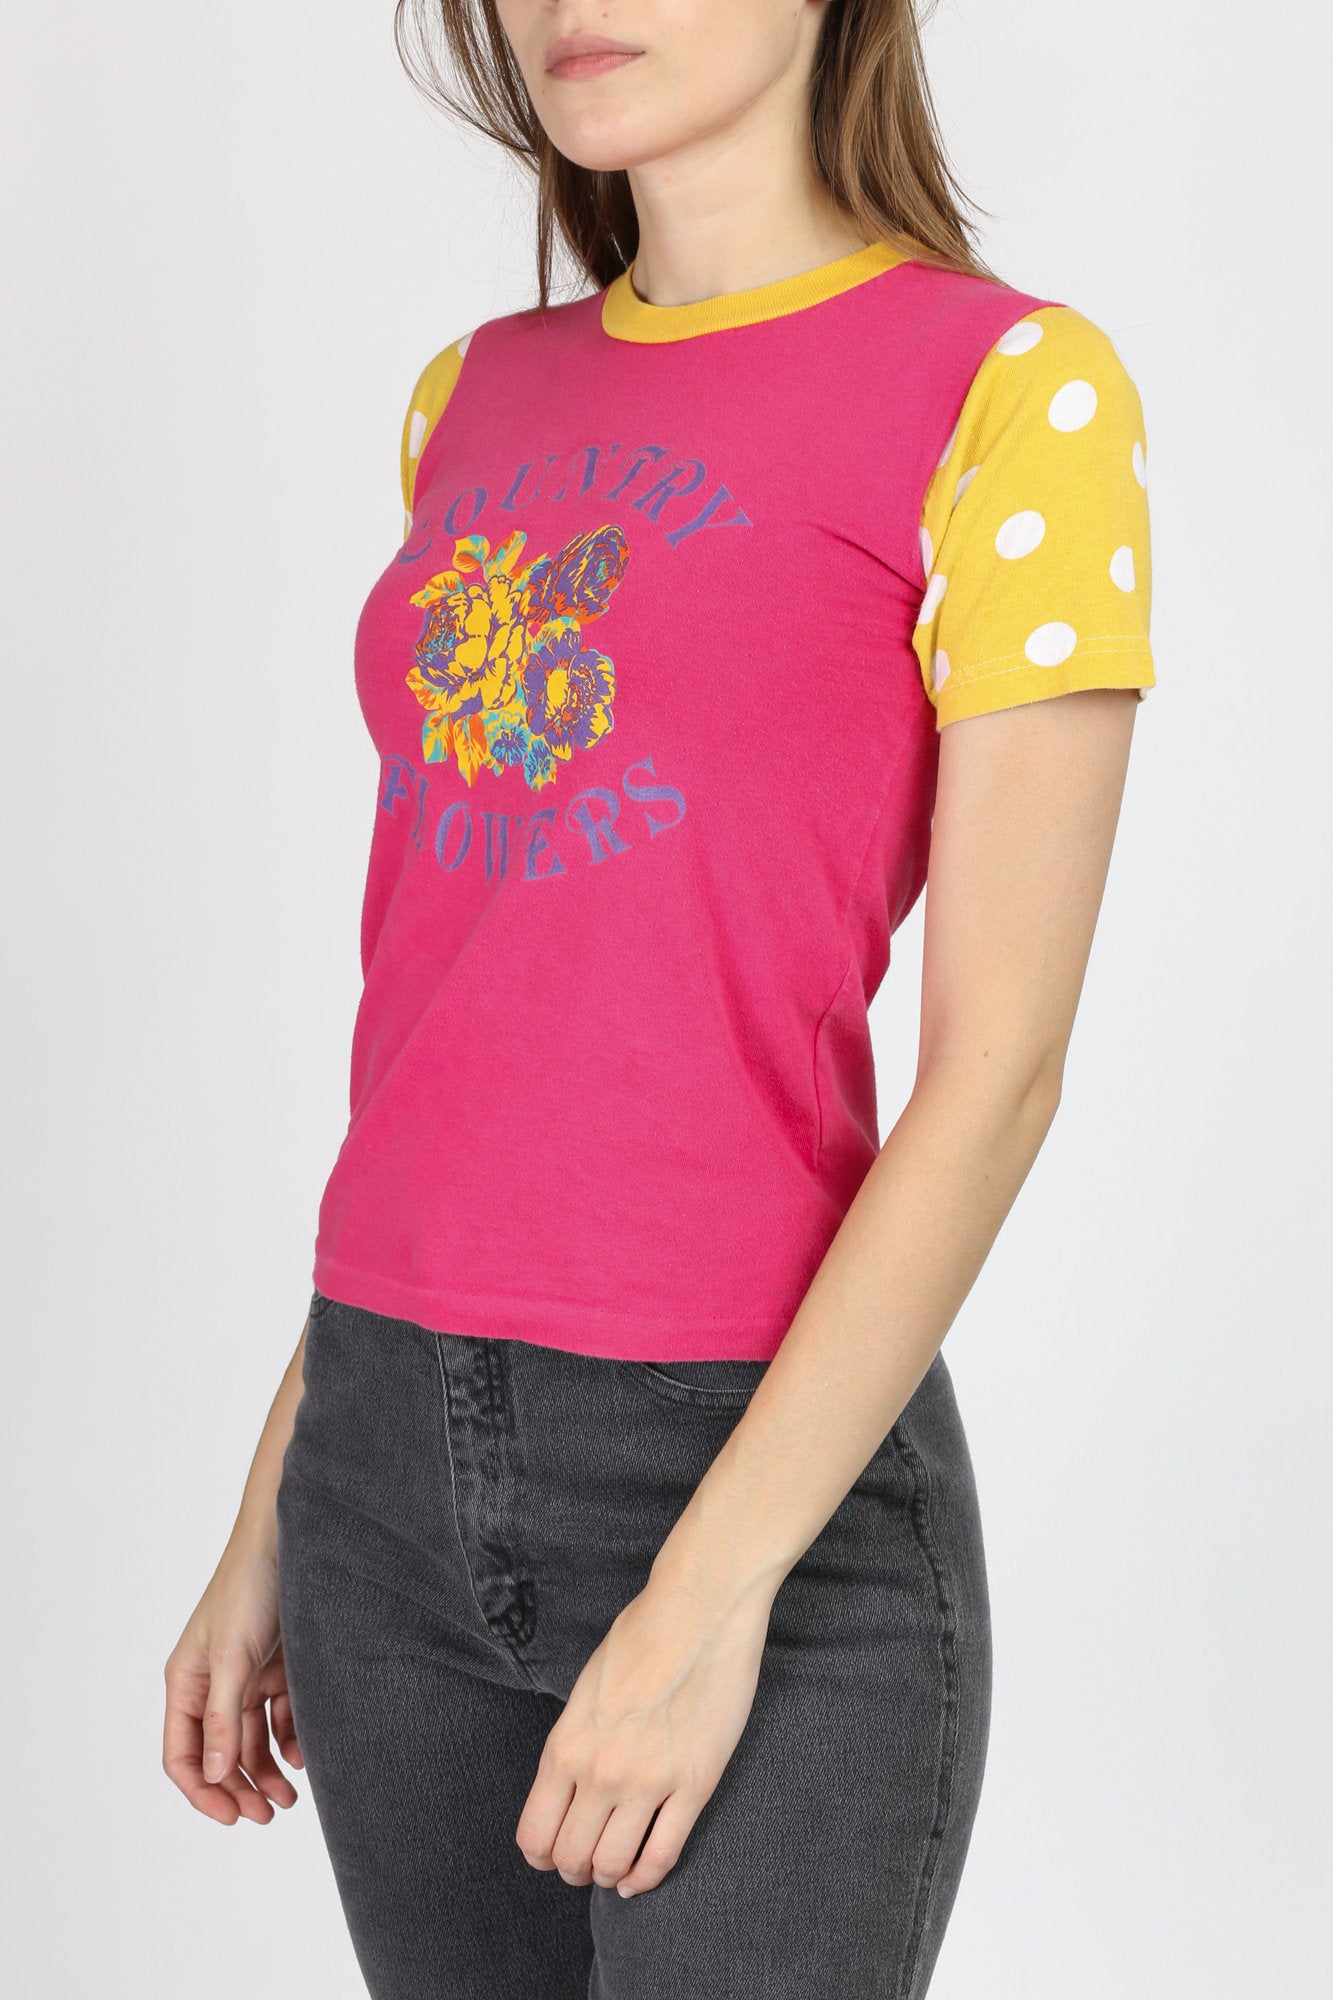 90s Country Flowers Girly Tee - XXS